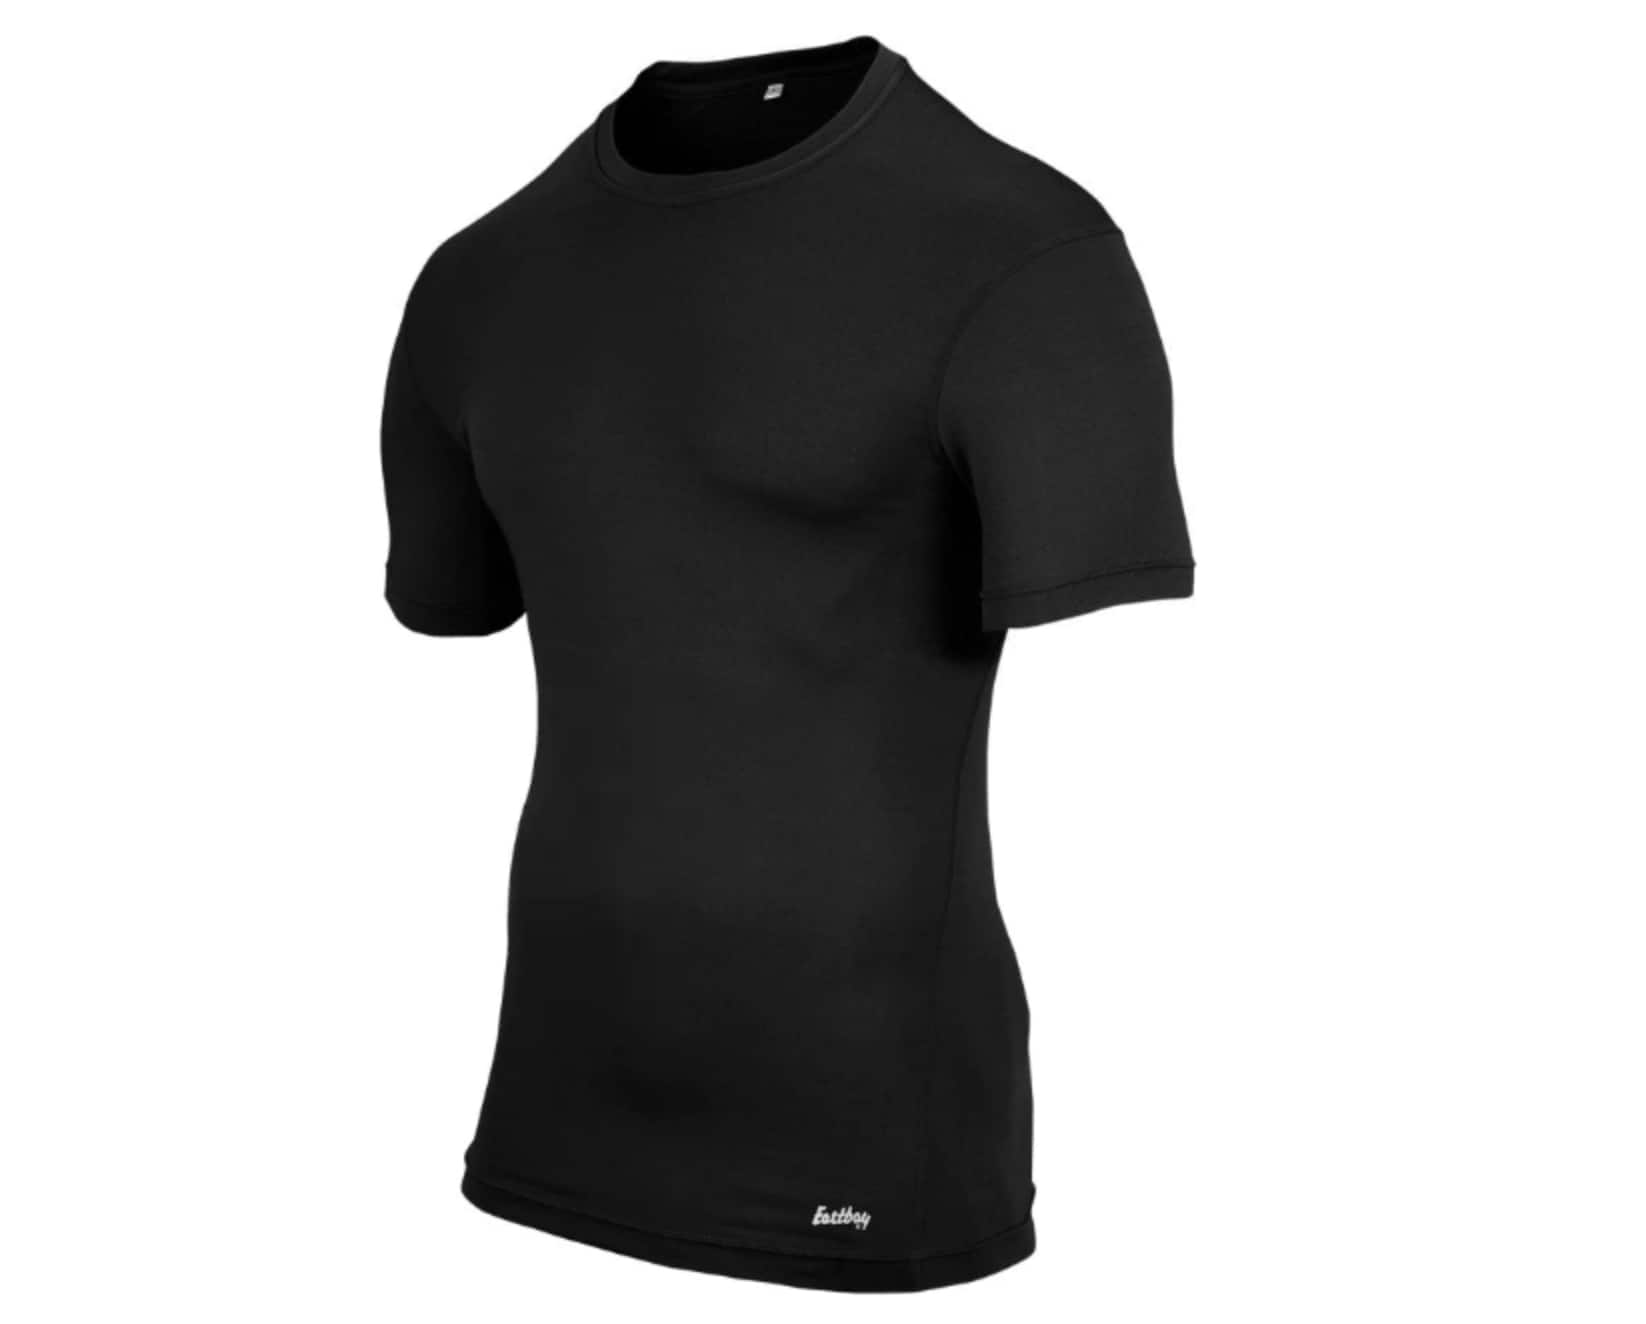 Evapor Compression Sale -  Shorts 2 for $15, Crew Top 2 for $20 @ Eastbay